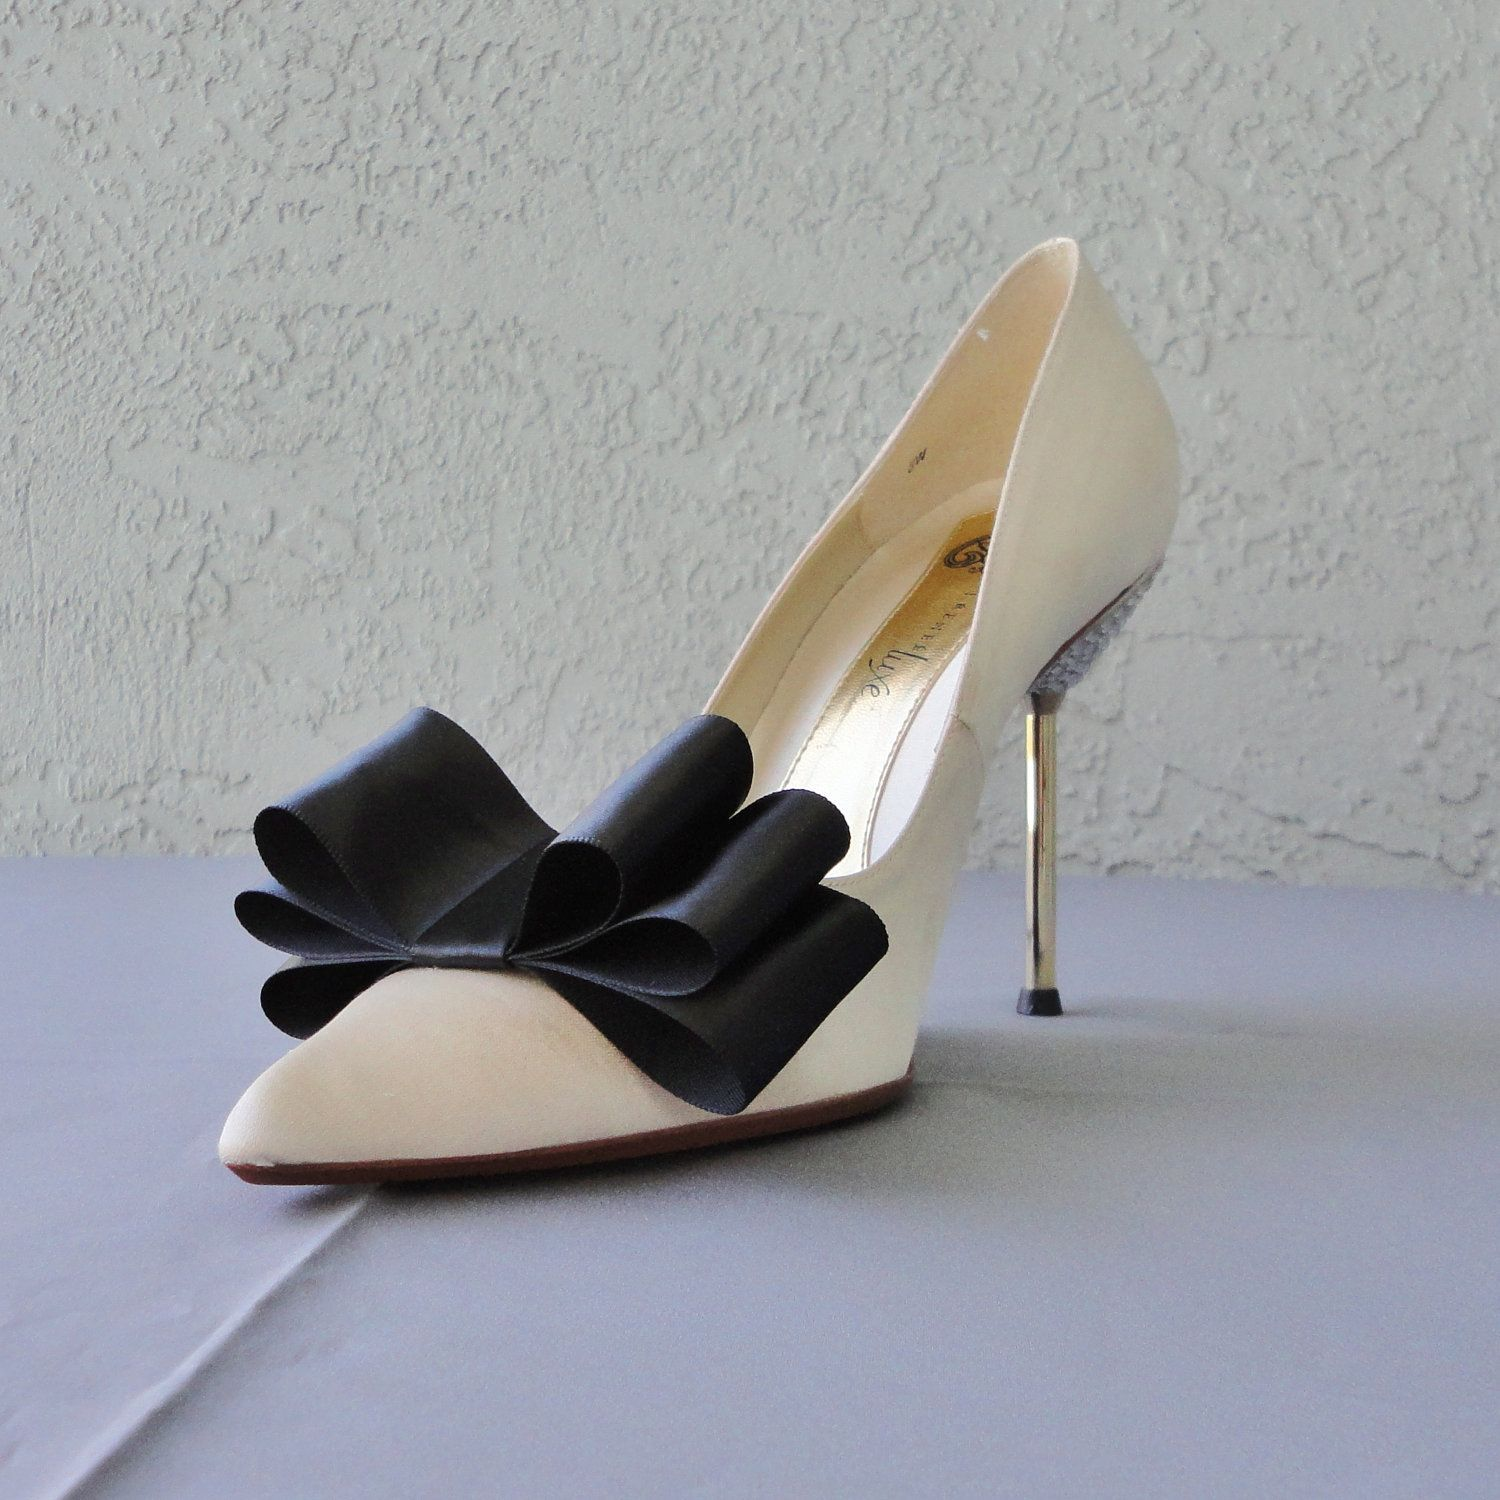 Black Satin Ribbon Bow Shoe Clips Set Of Two, More Colors Available.